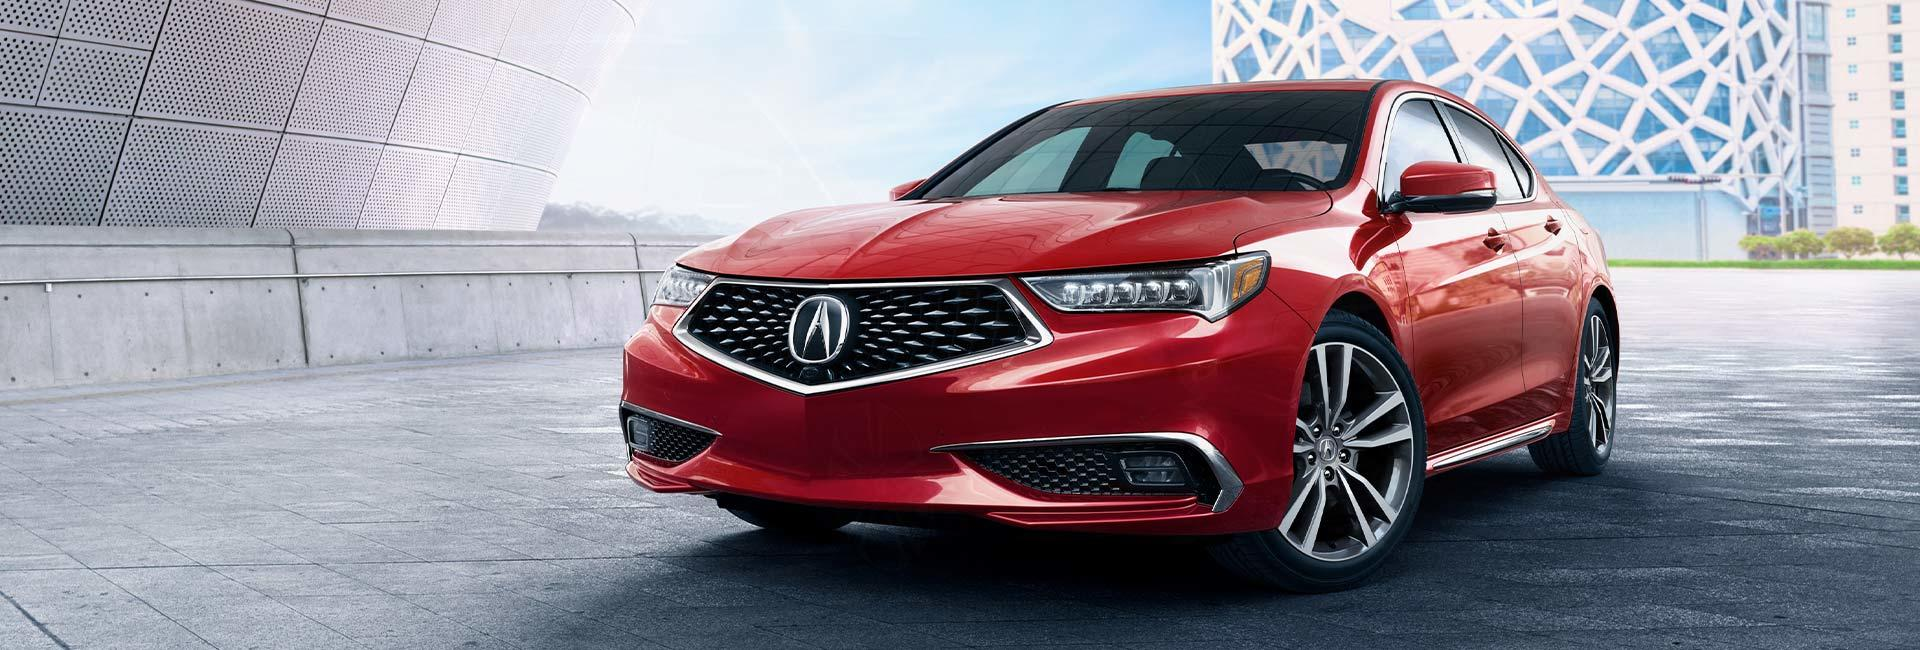 Picture of the new 2020 Acura TLX for sale at Spitzer Acura